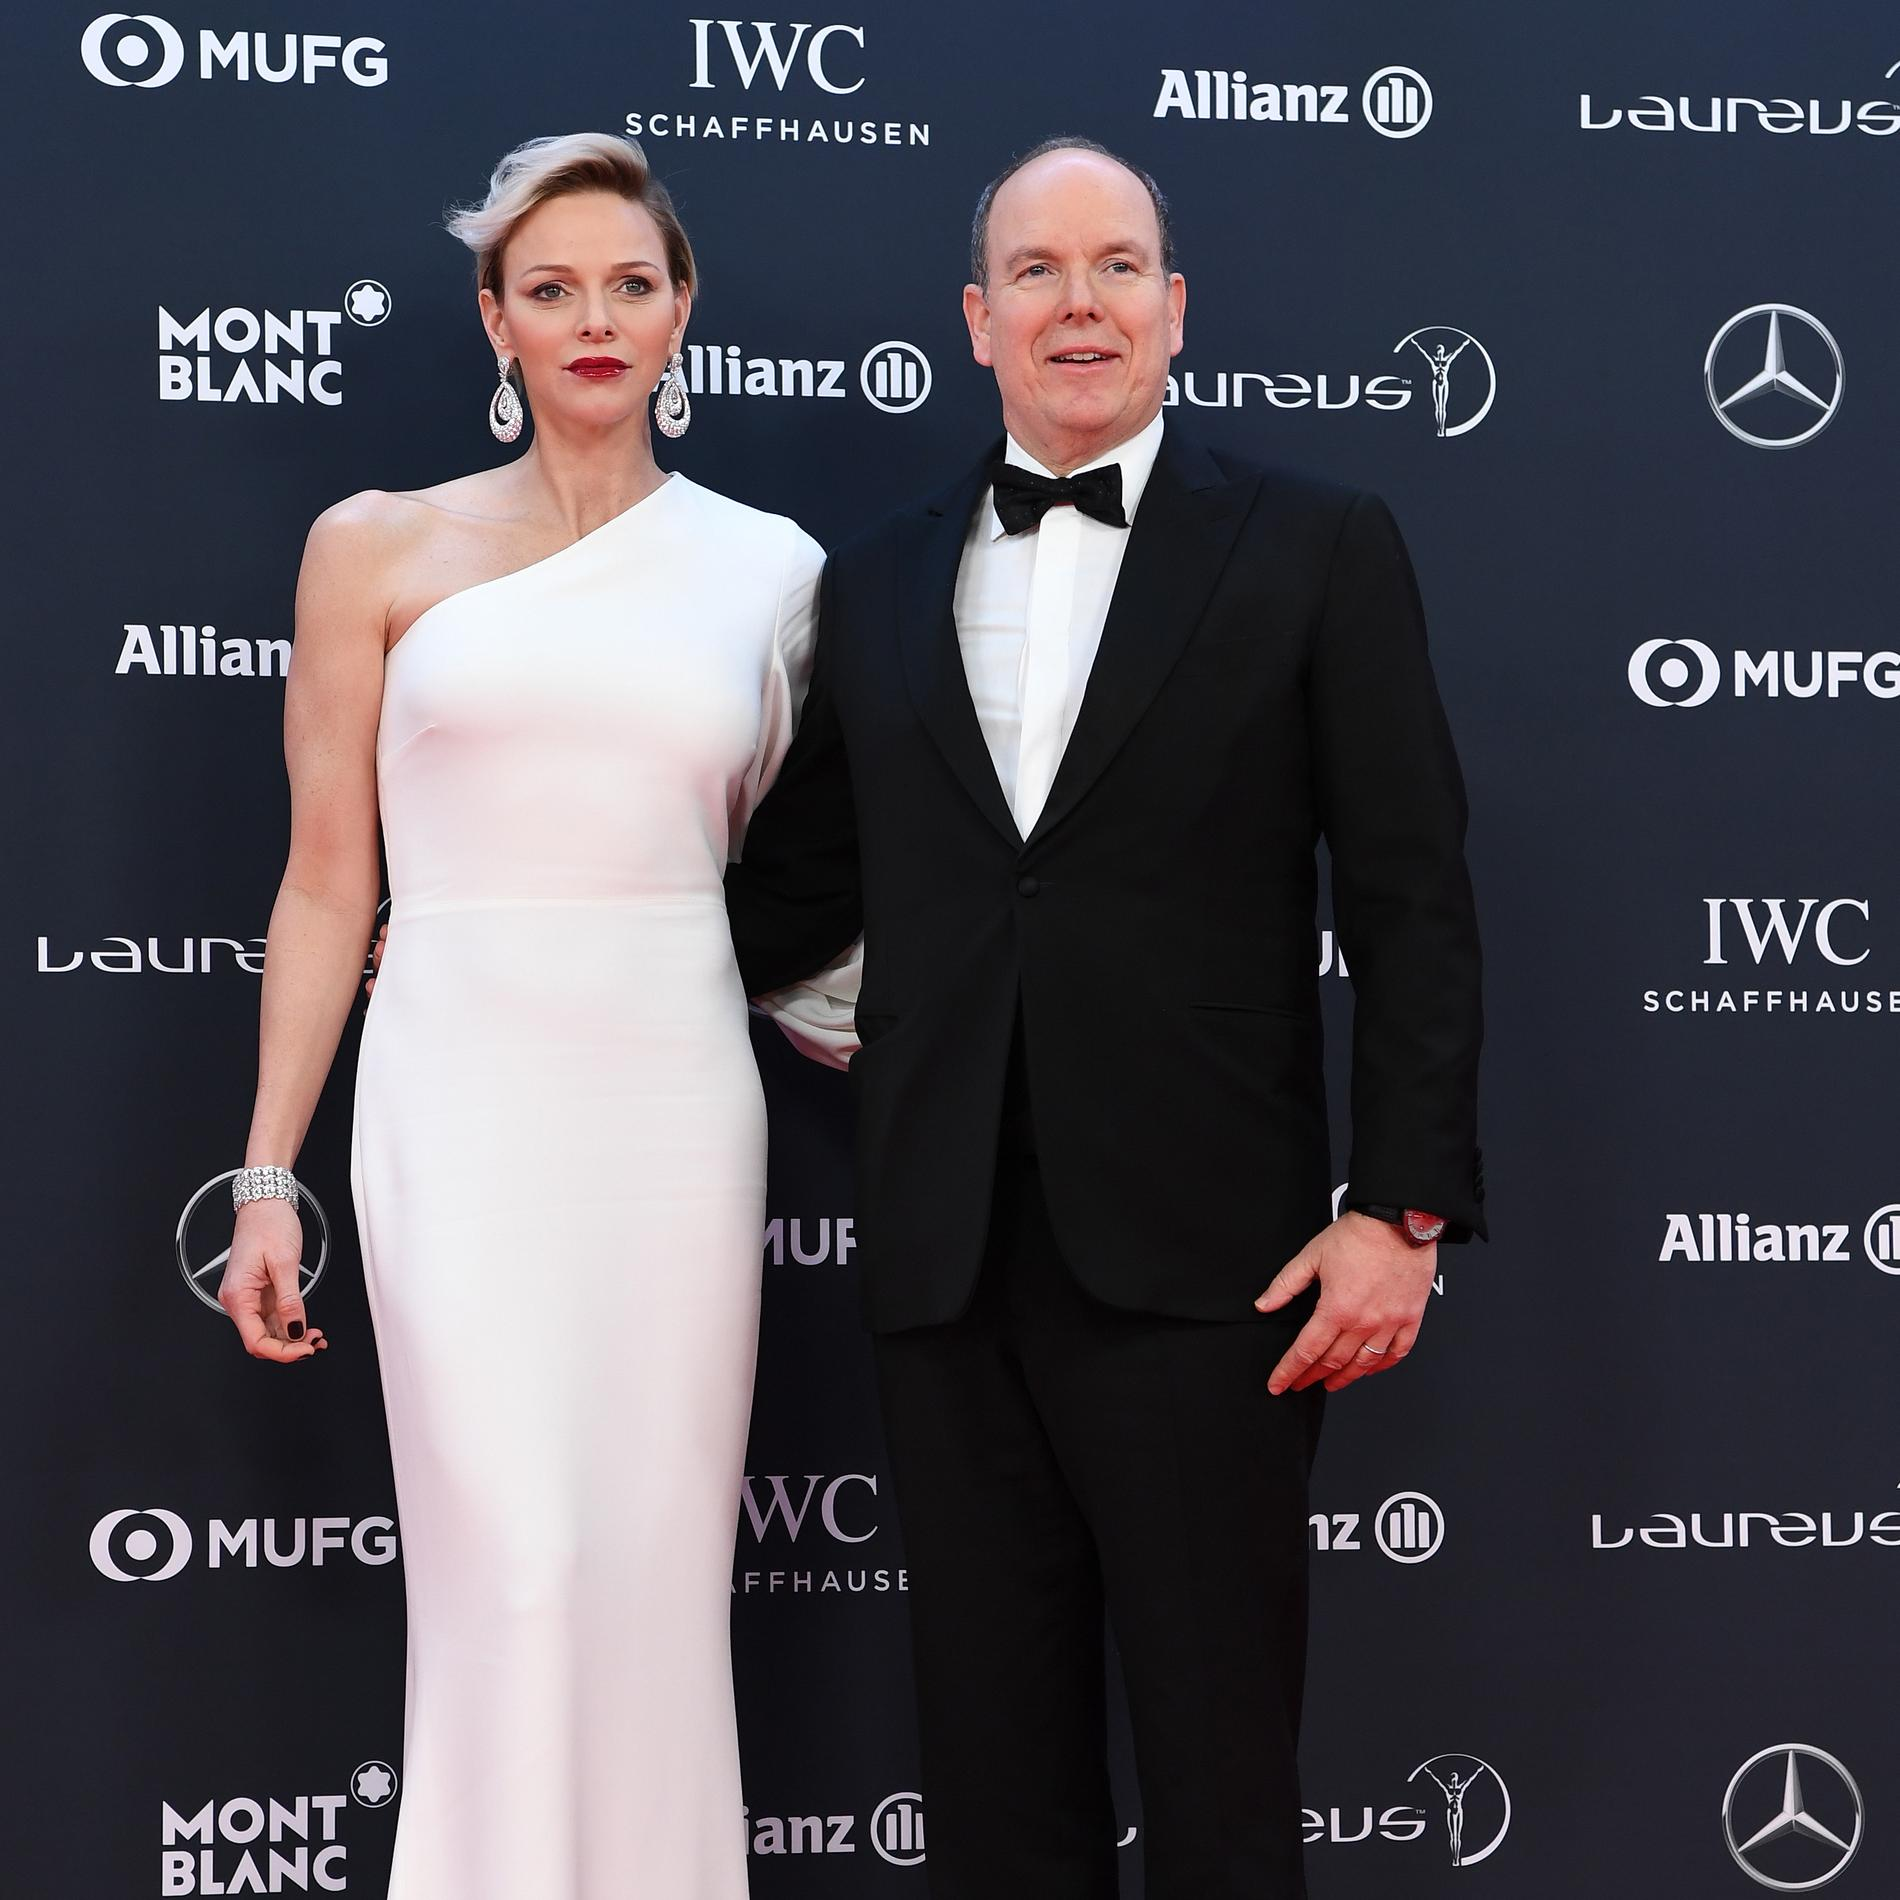 Charlene et Albert de Monaco aux Laureus Wolrd Sports Awards